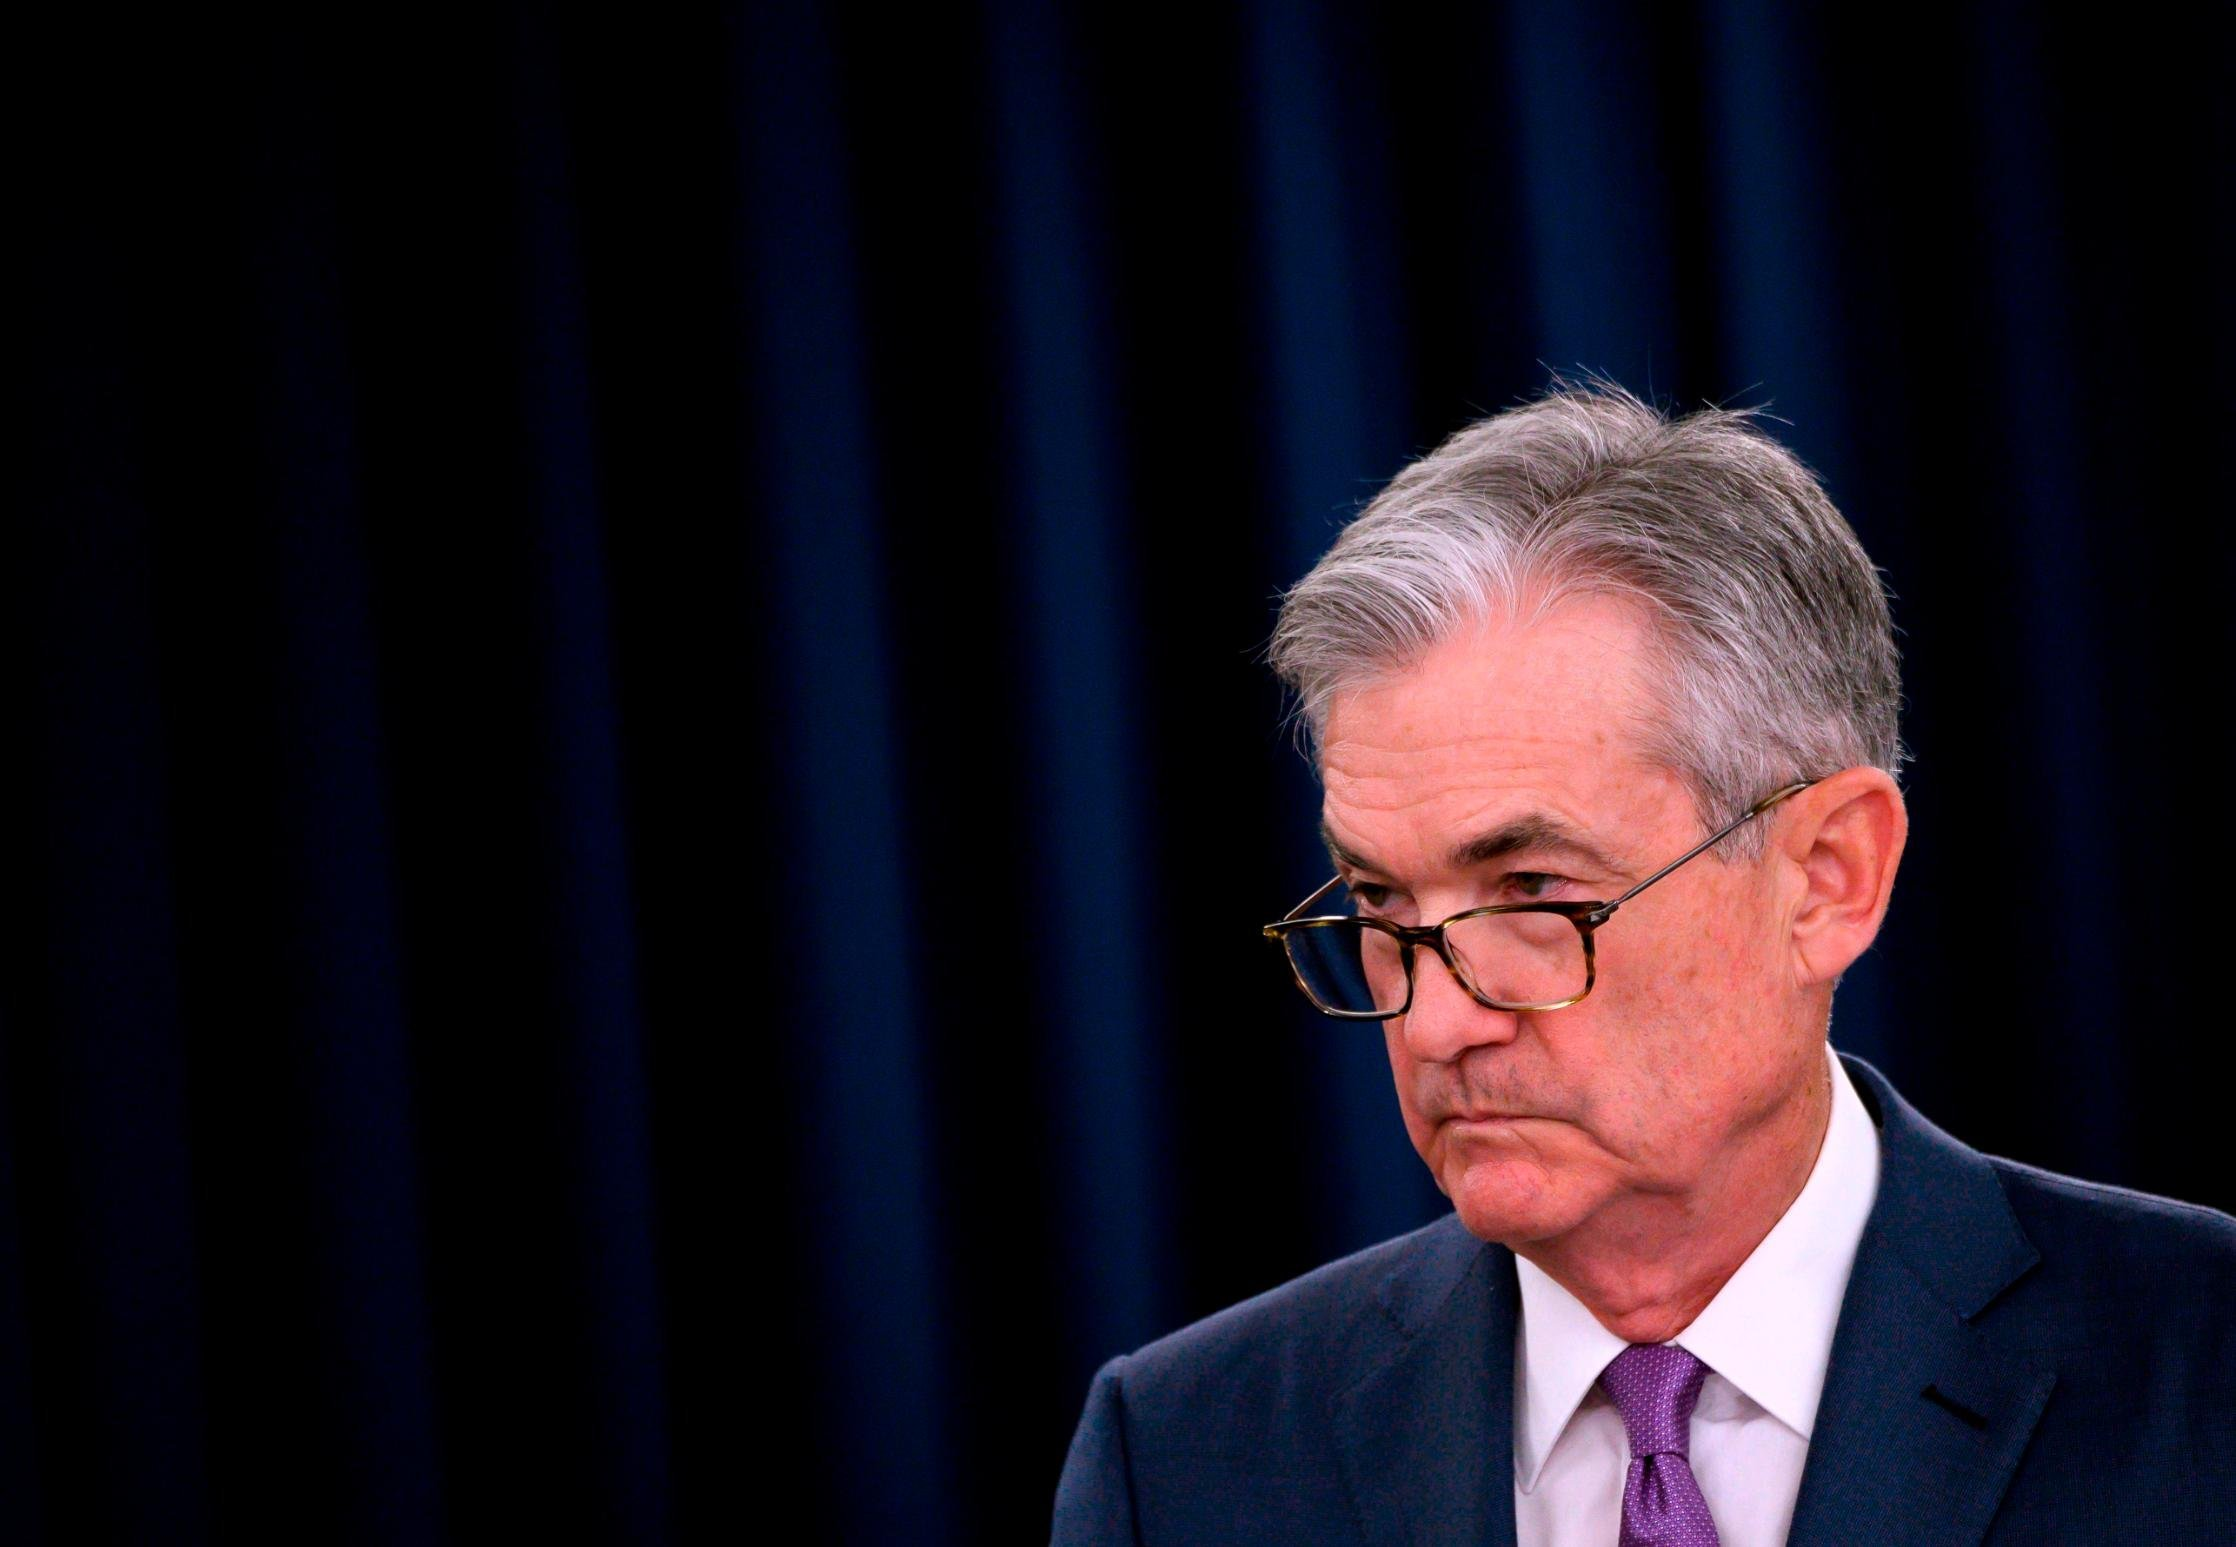 Fed officials sought rate flexibility amid conflicting economic signals, minutes show